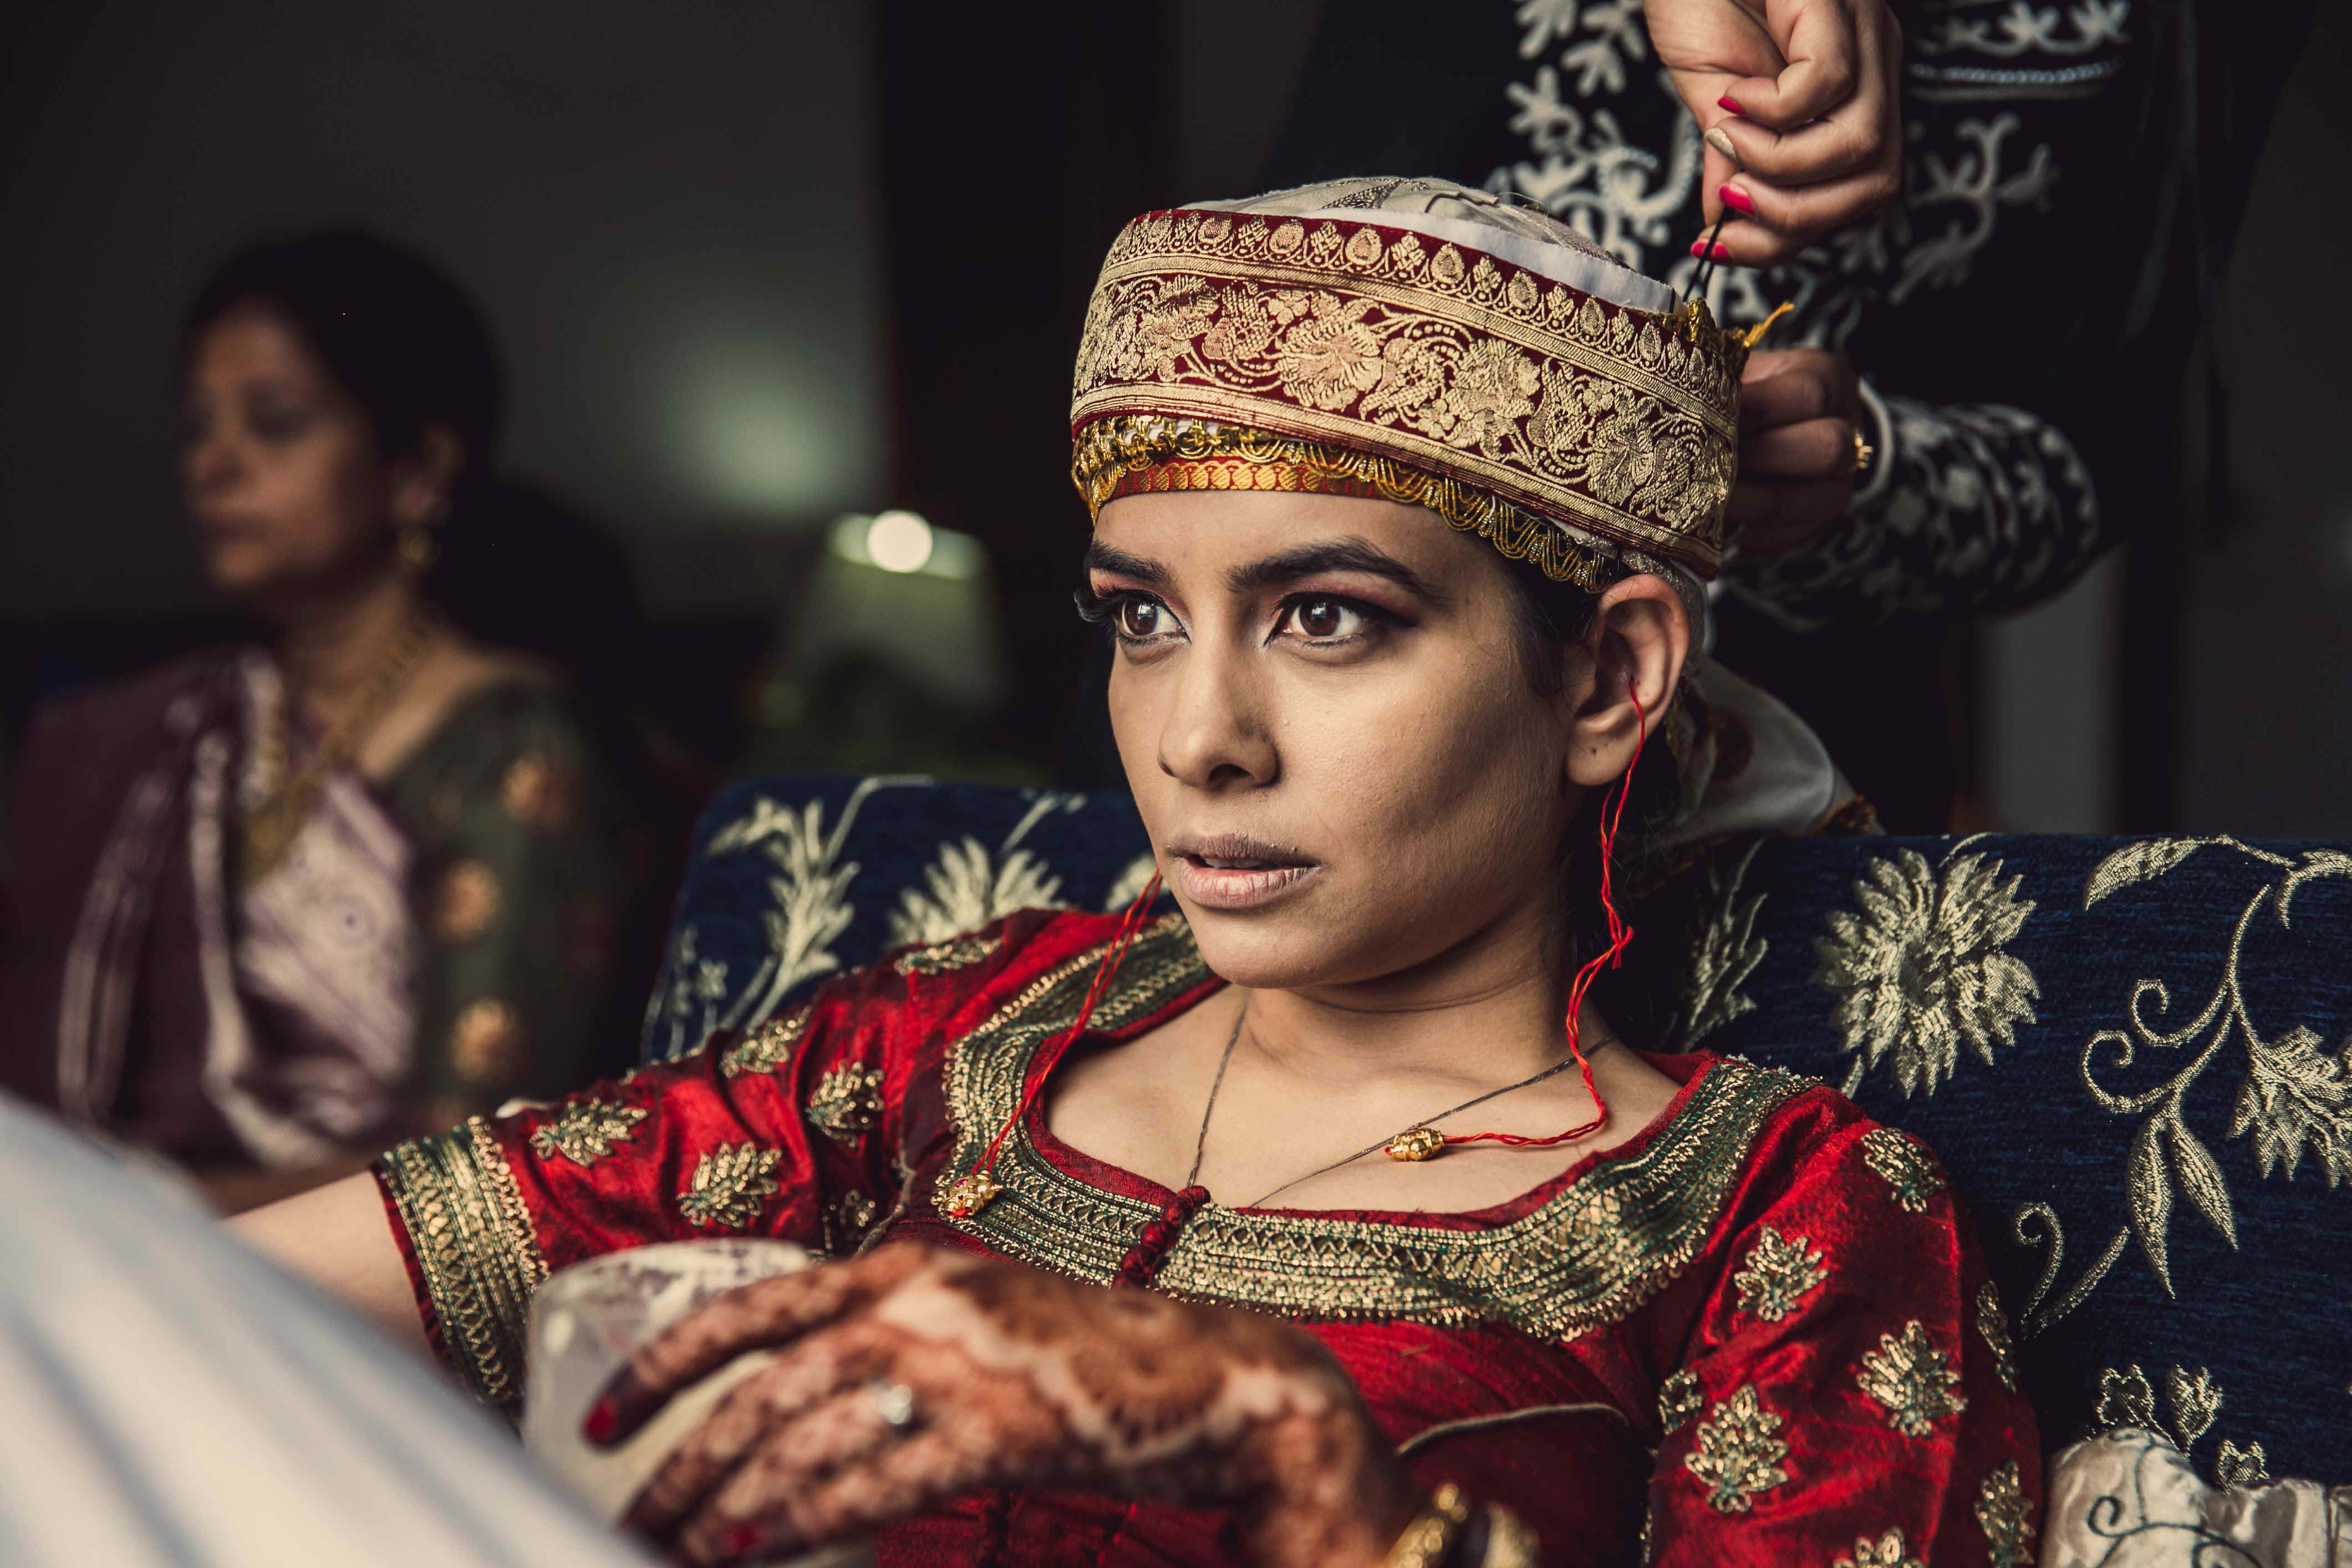 kashmiri wedding ritual:nikhil kapur photography